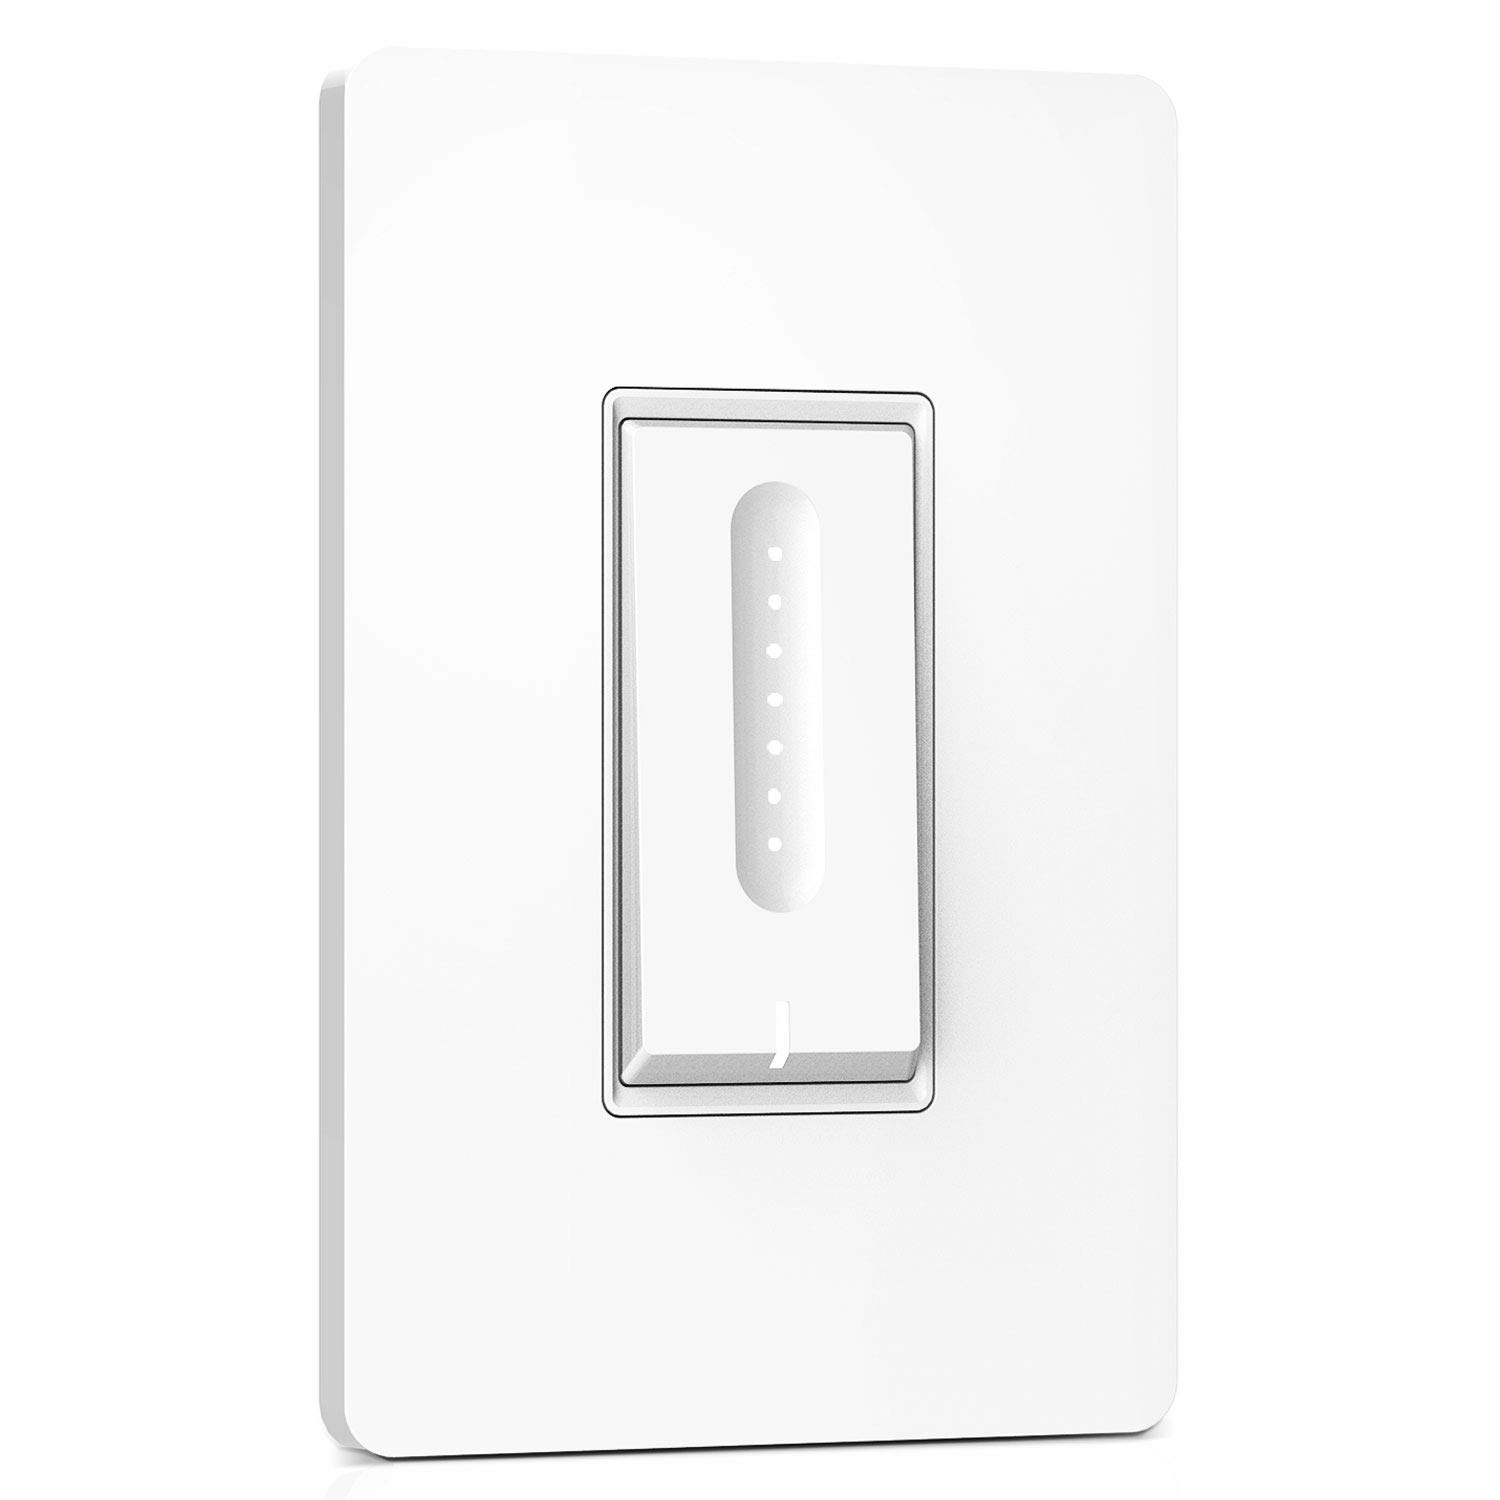 Smart Dimmer Switch, Treatlife WiFi Light Switch for Dimmable LED, Halogen and Incandescent Bulbs, Compatible with Alexa, Google Assistant and IFTTT, Remote Control, Single-Pole, Neutral Wire Required